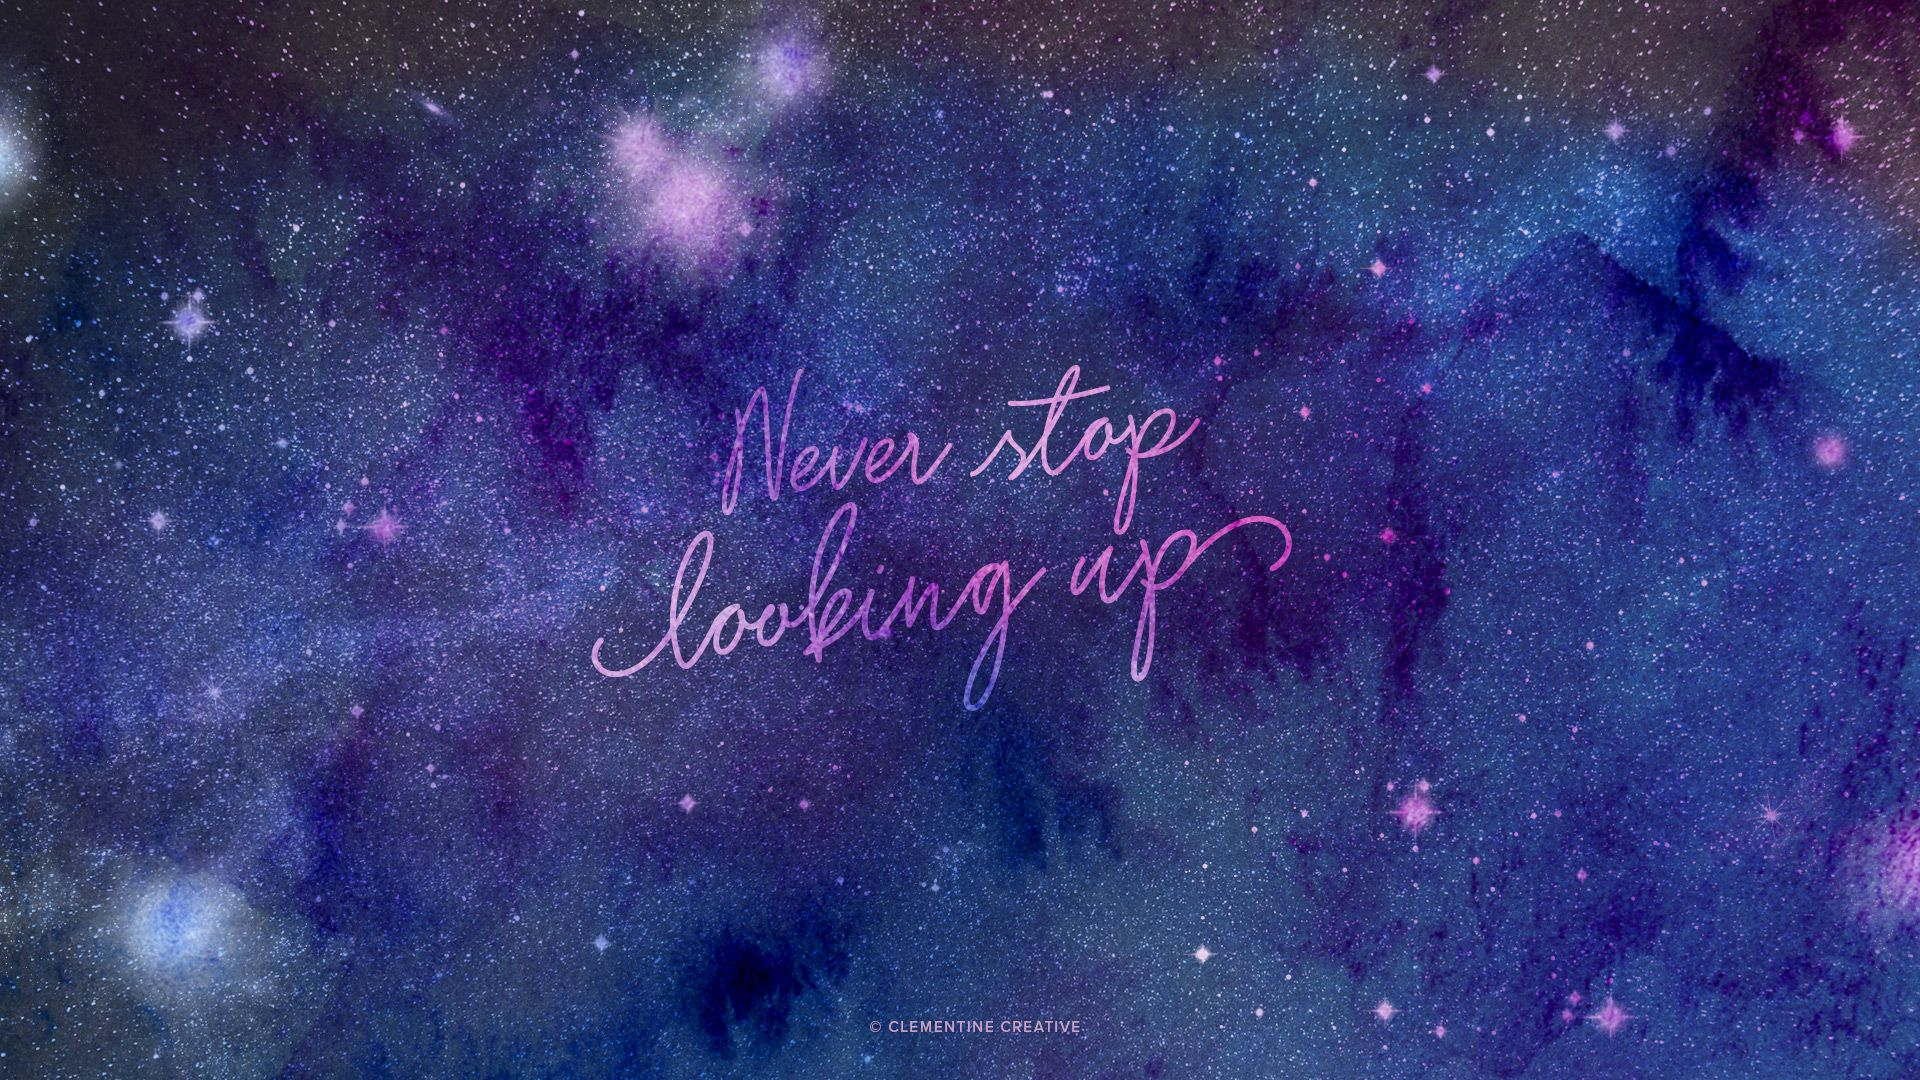 Never Stop Looking Up Wallpaper Starry Sky Background For Your Devices Cool Galaxy Wallpapers Galaxy Wallpaper Computer Wallpaper